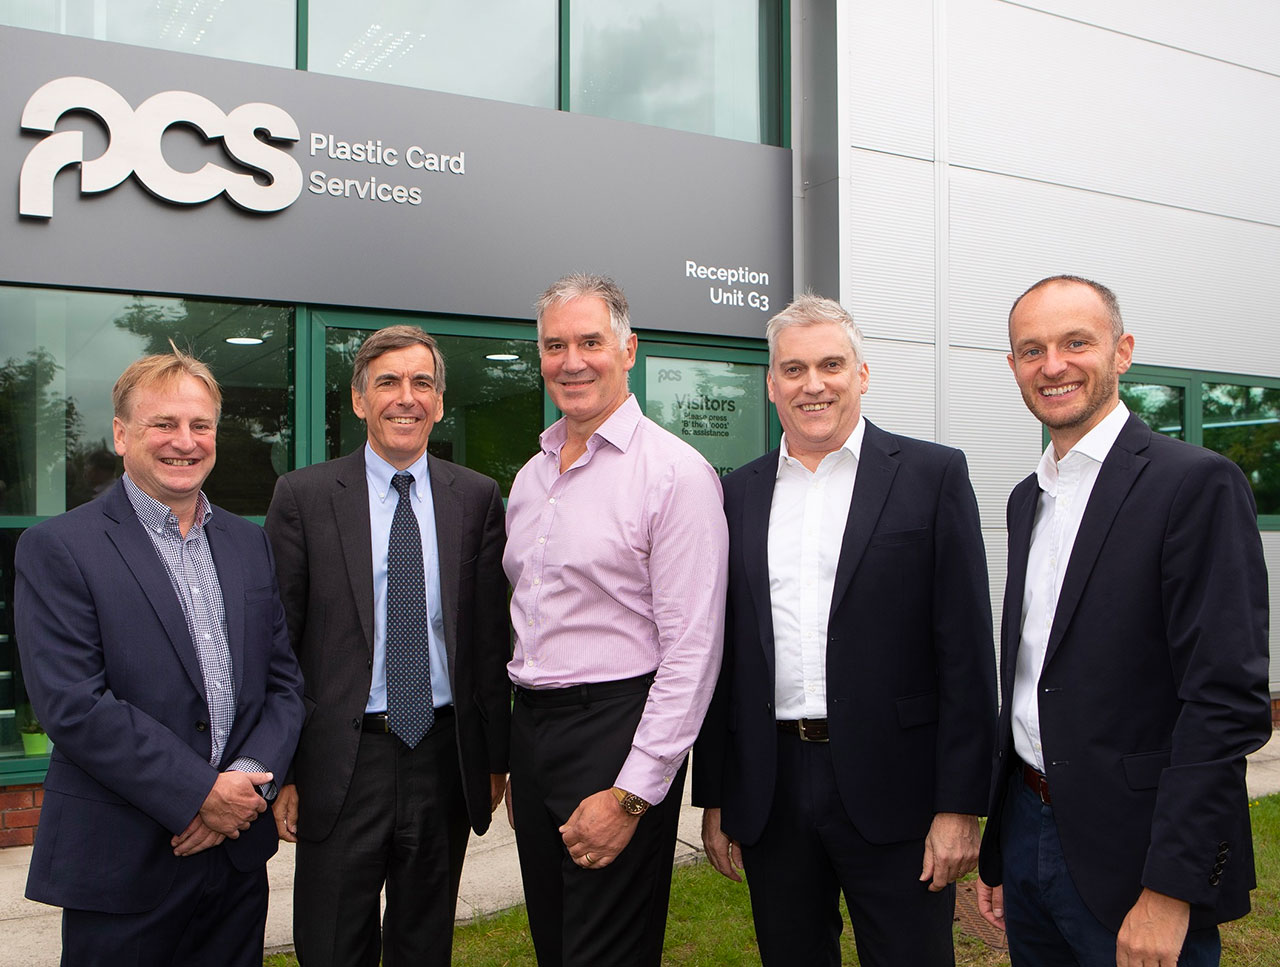 £1MILLON INVESTMENT IN NEW DIGITAL FACILITY MARKS 25 YEARS IN STYLE  AT MACCLESFIELD MANUFACTURING FIRM